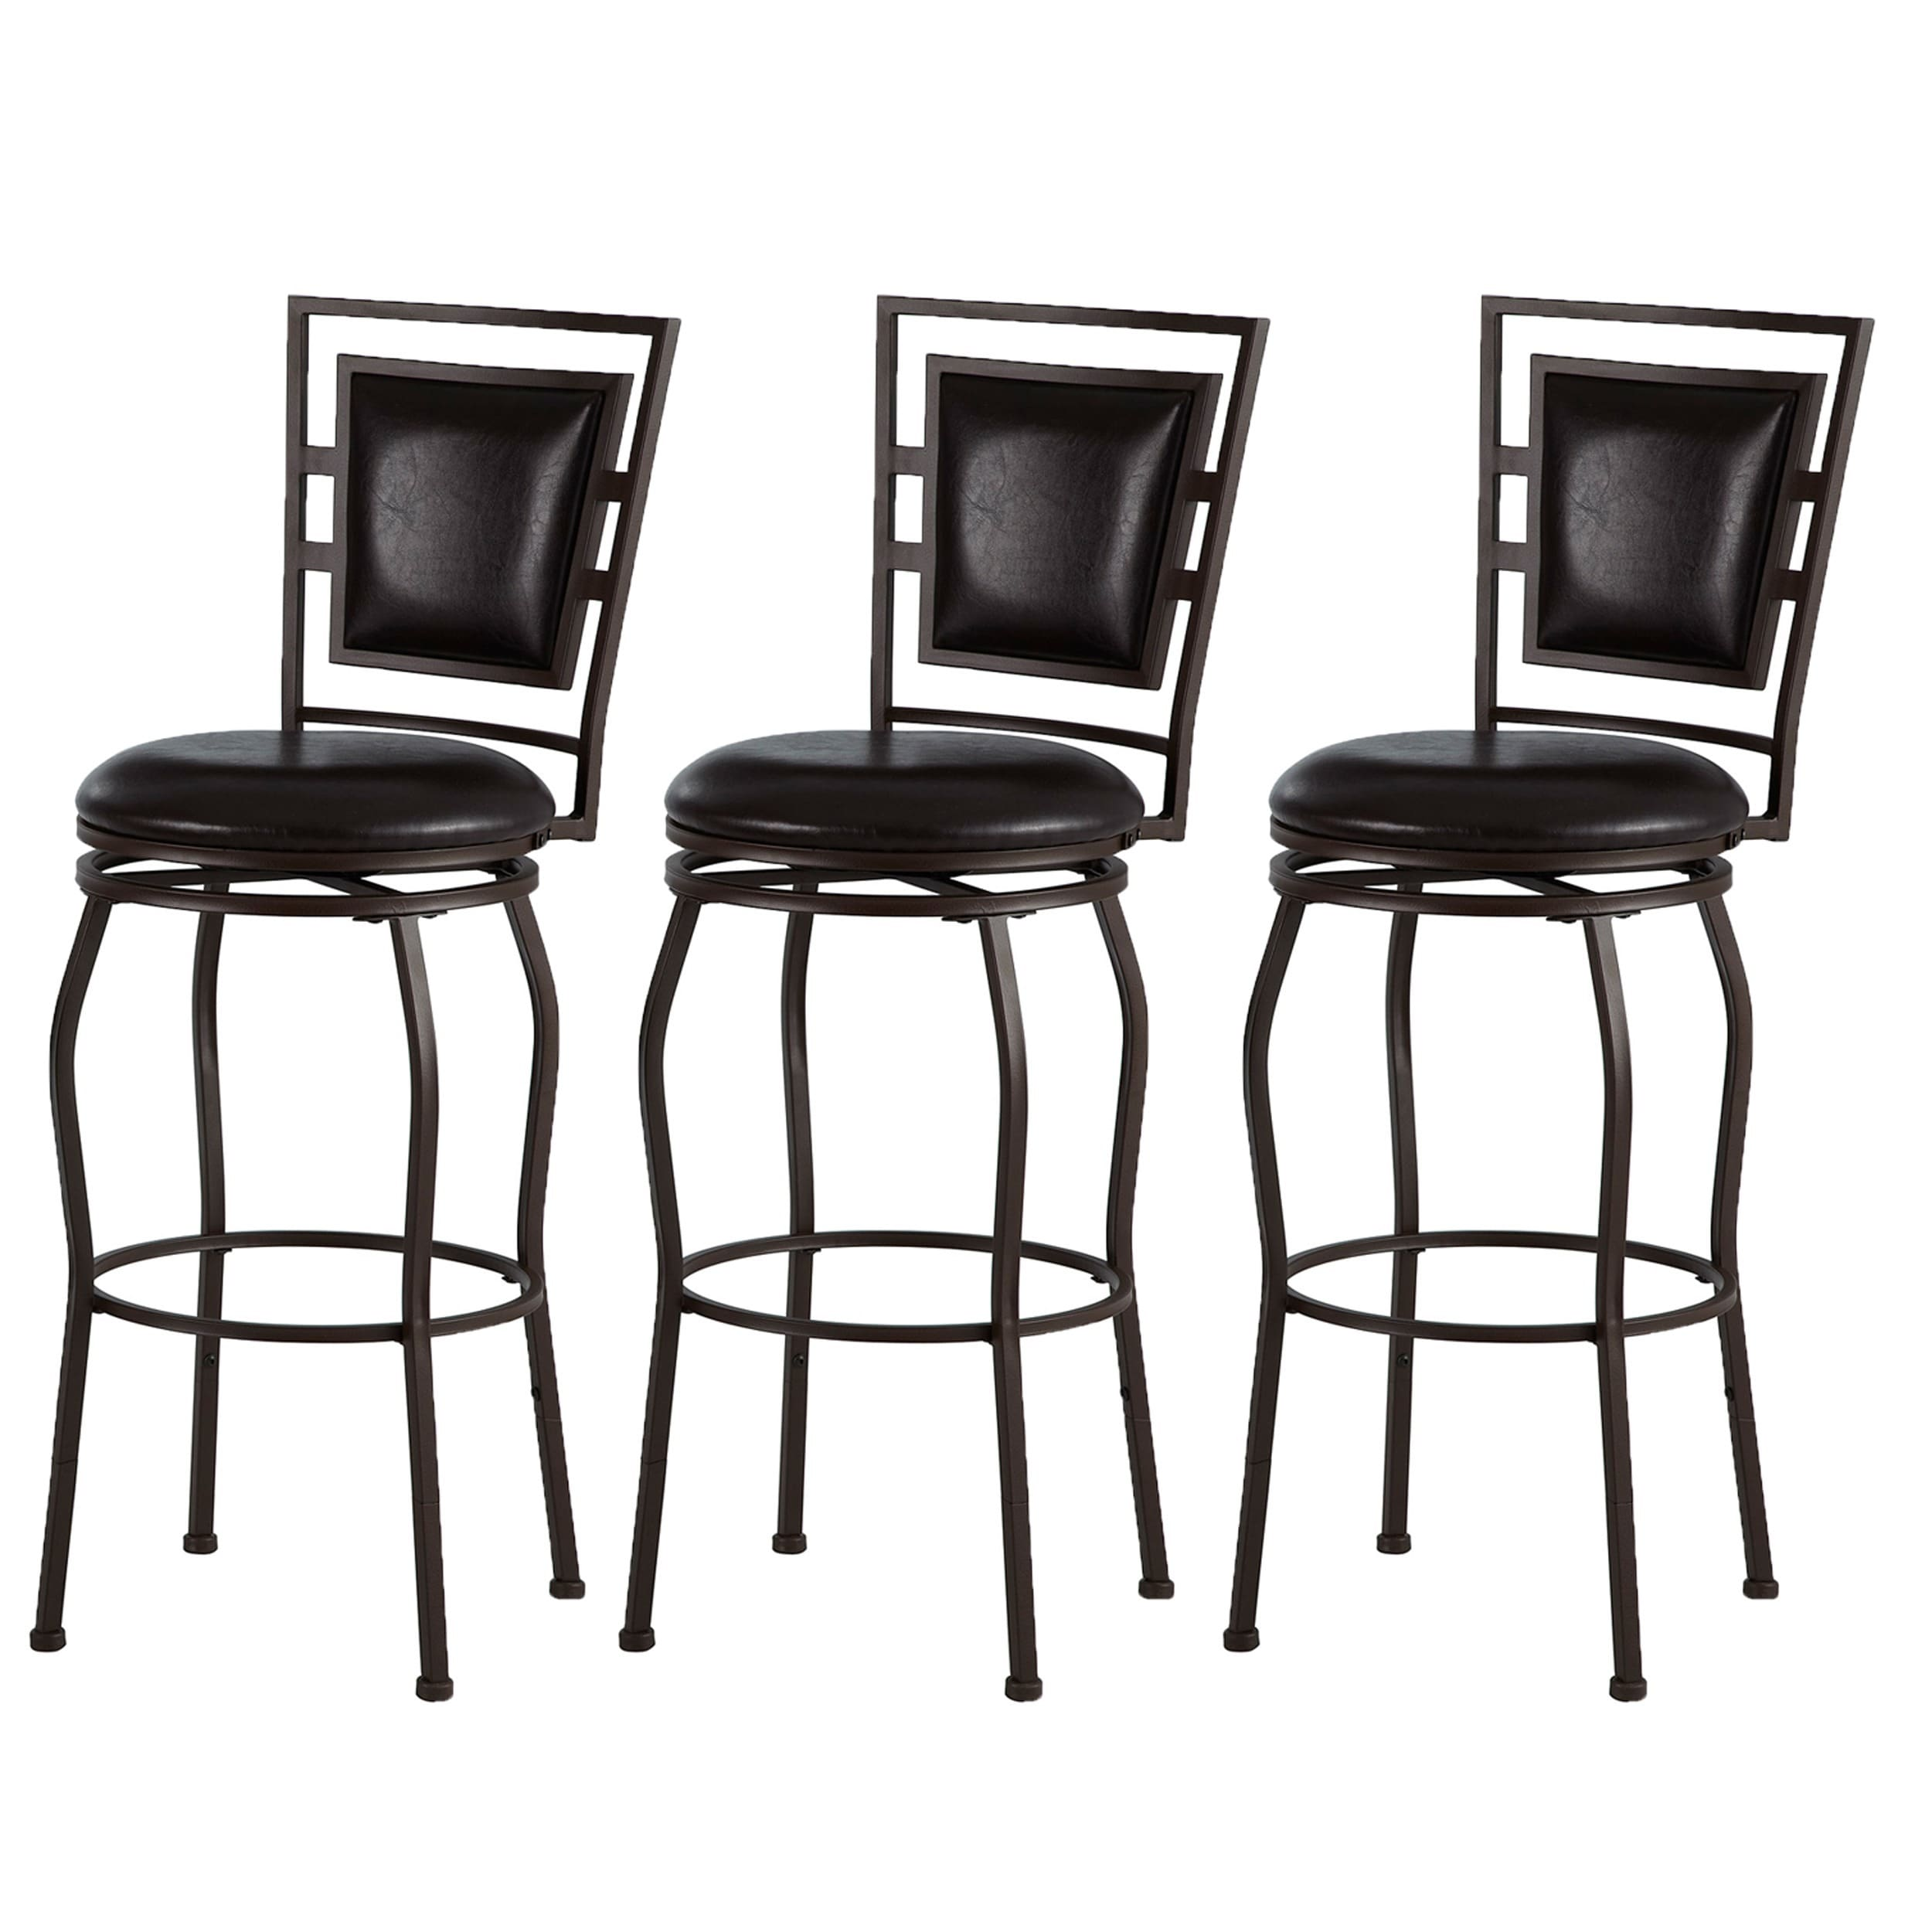 Copper Grove Nantucket Adjule Bar Stools Set Of 3 16 X 18 38 5 44 75 H On Free Shipping Today 20461293